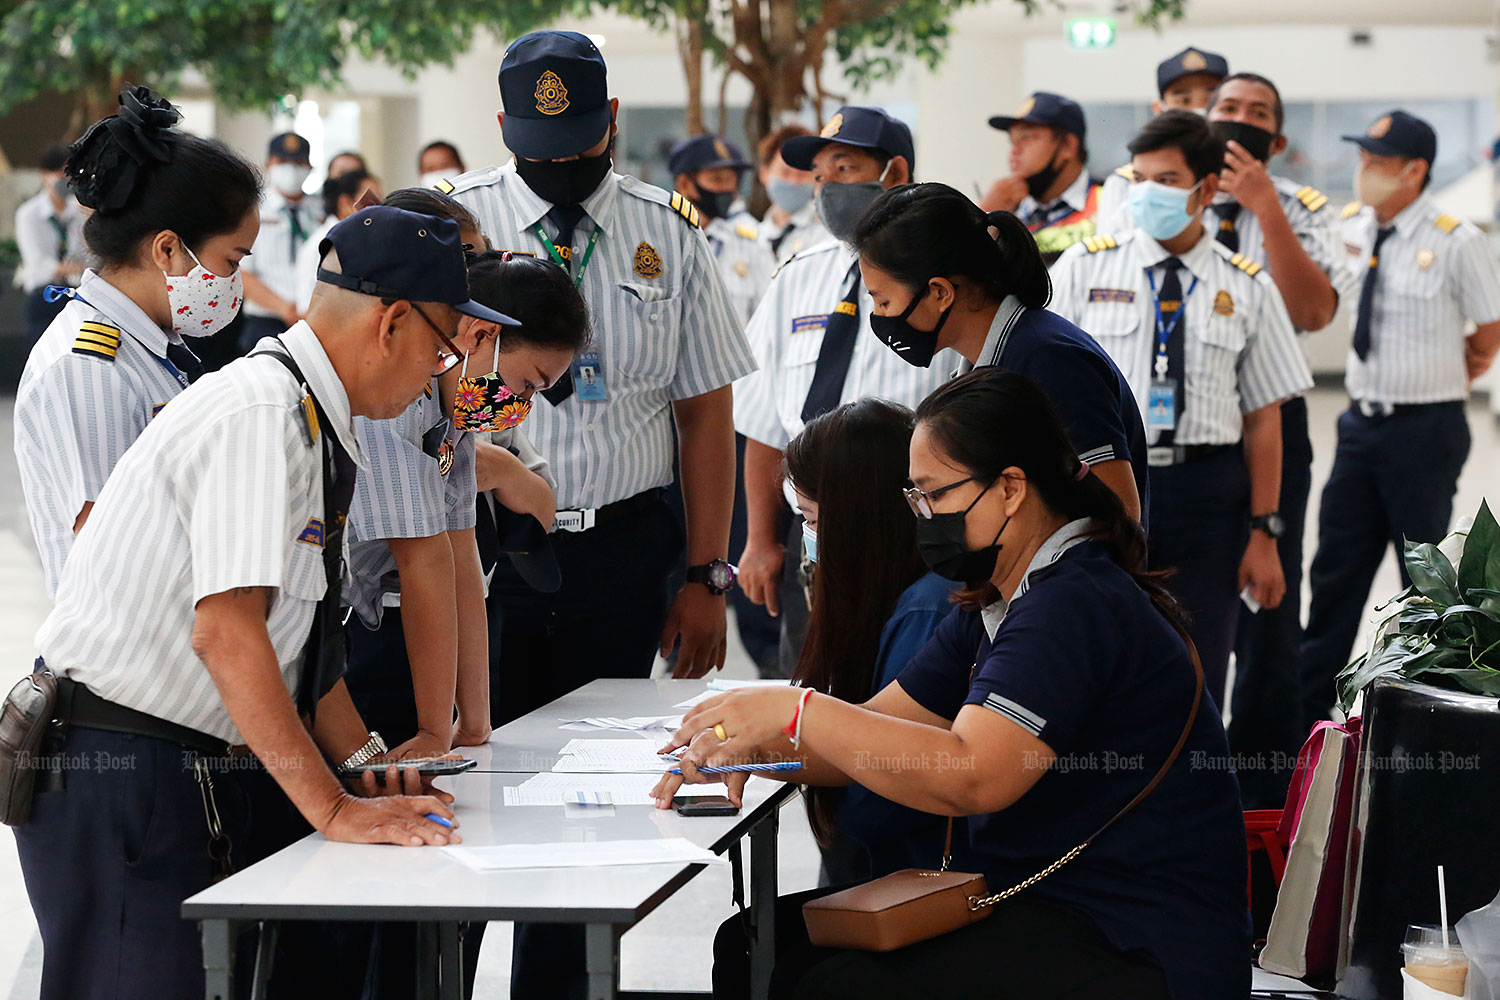 Securing support: More than 250 security guards whose contracts ended on April 30 queue to register with their company's representatives to see what benefits they are entitled to. The guards gathered at the Government Complex building on Chaeng Watthana Road where they had also been working. (Photo by Pronprom Sattabraya)